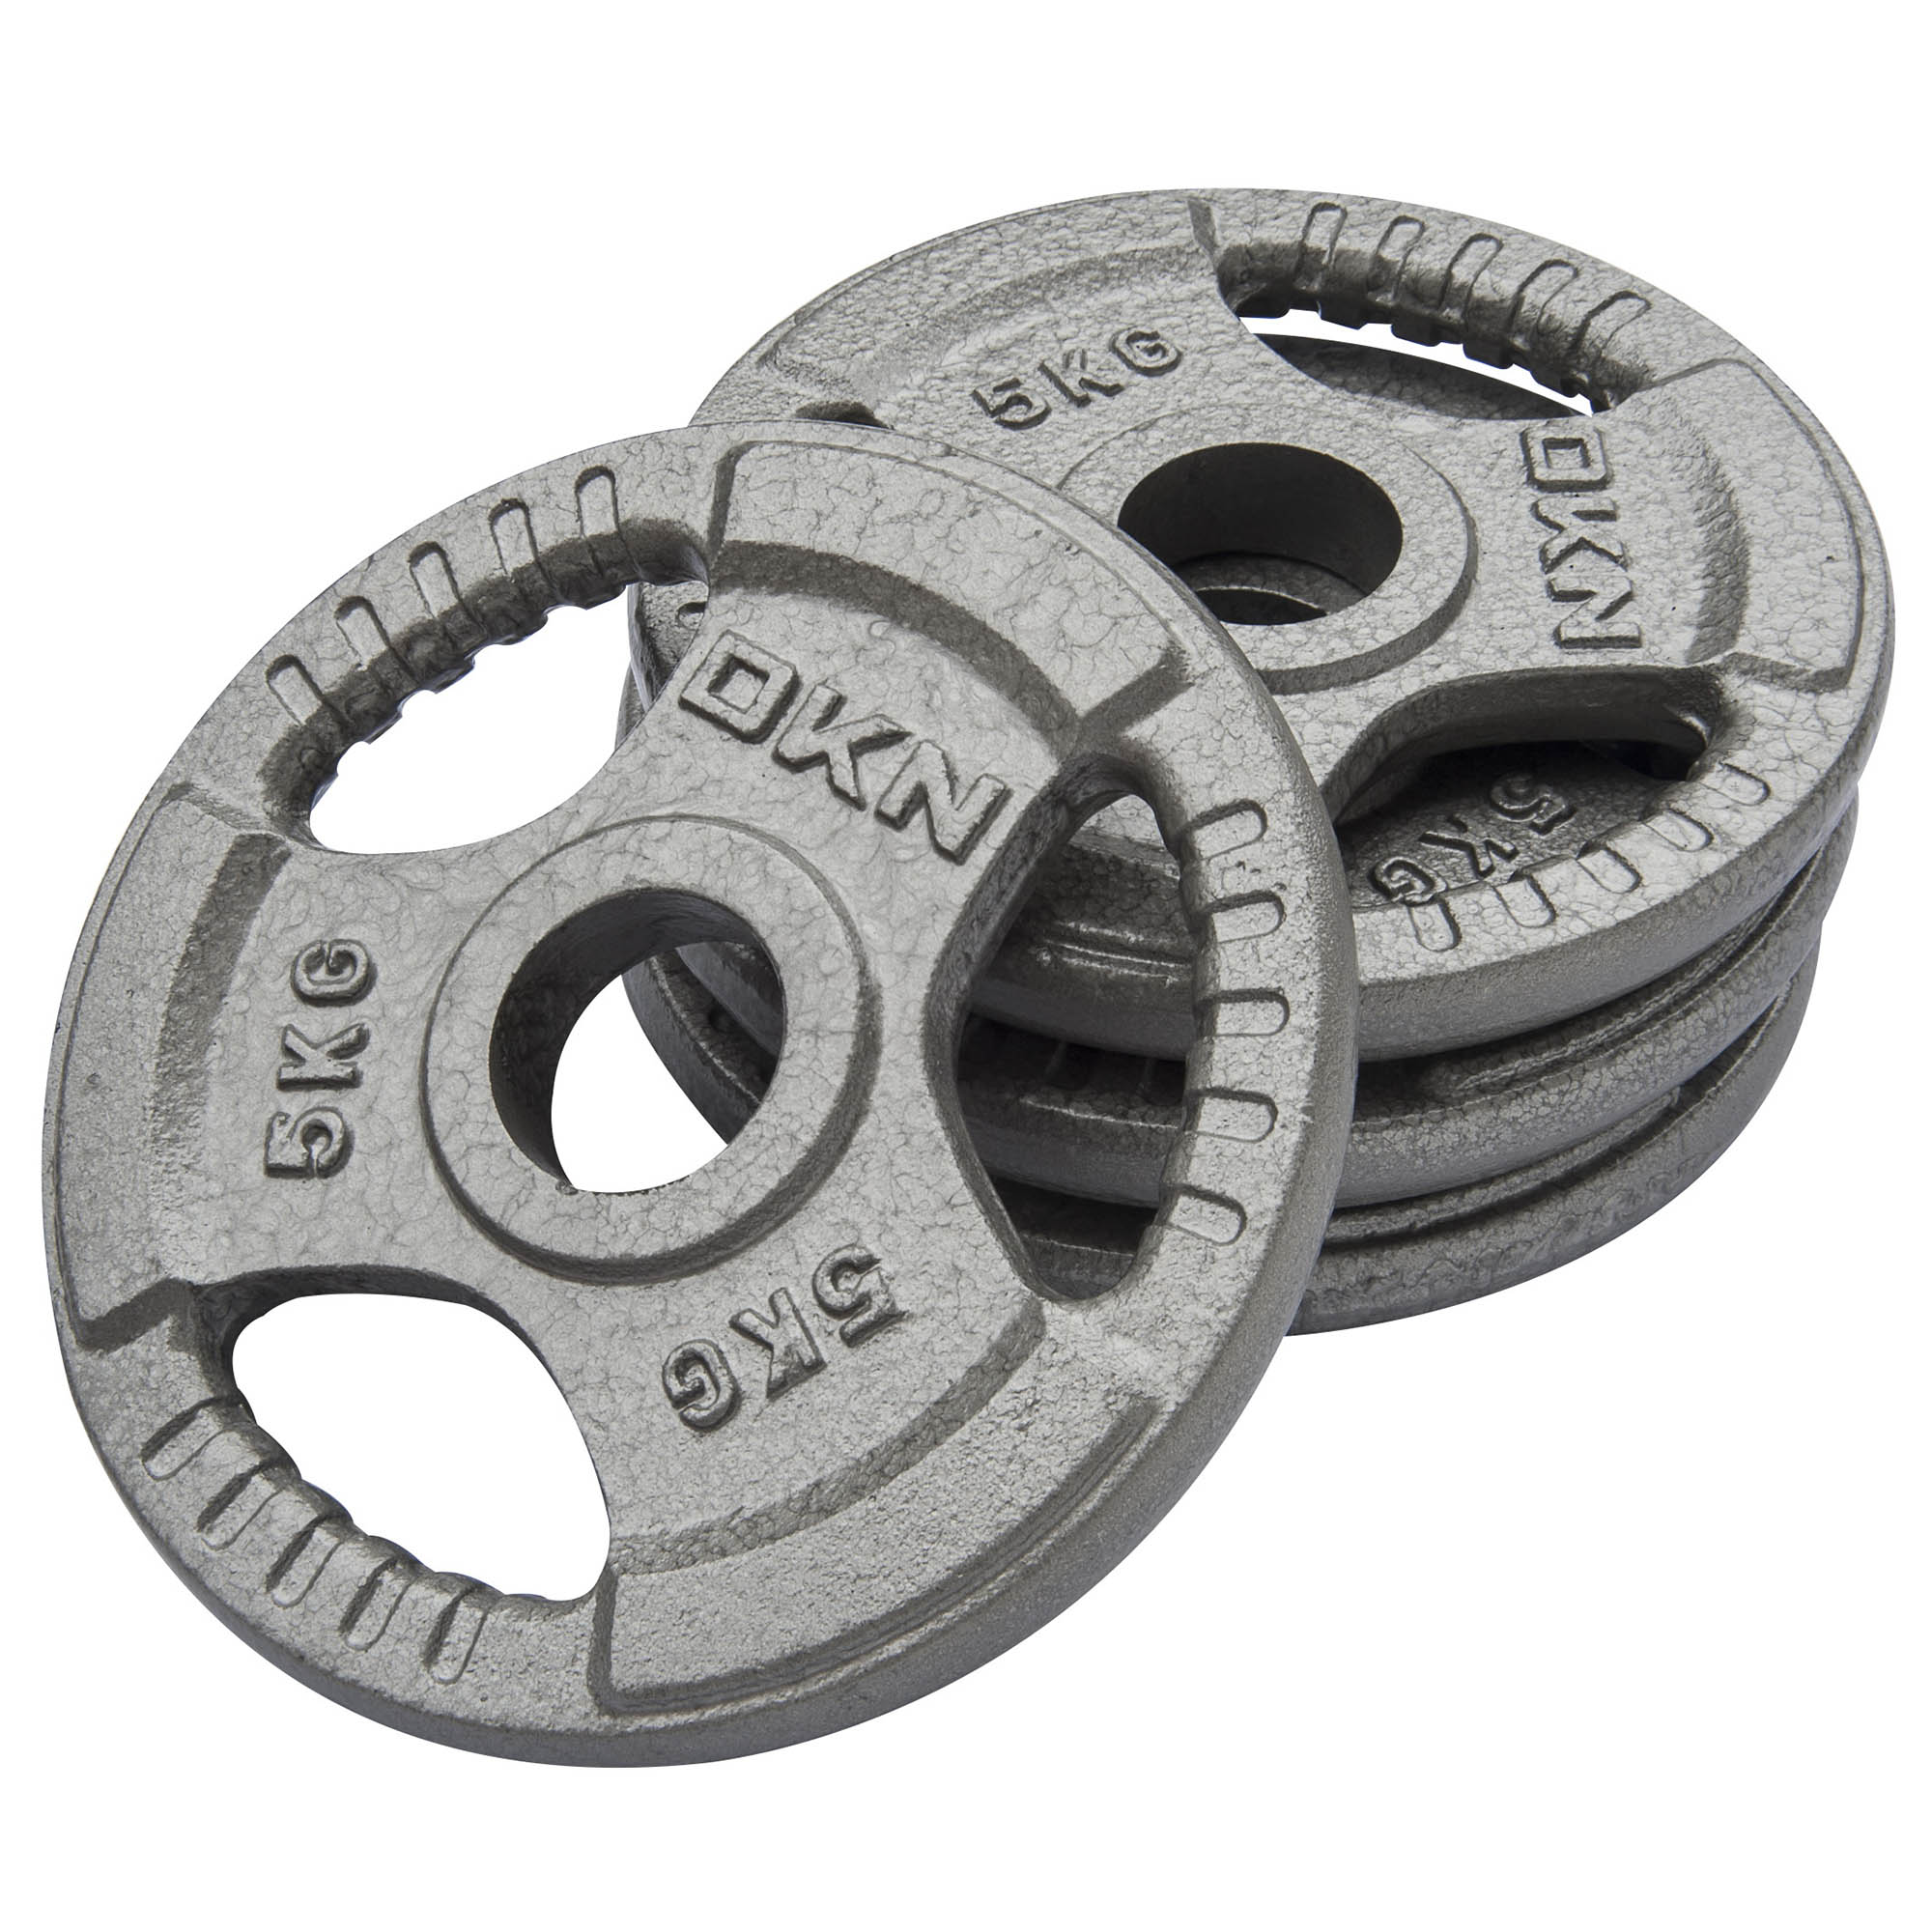 DKN Tri Grip Cast Iron Olympic Weight Plates - 4 x 5kg